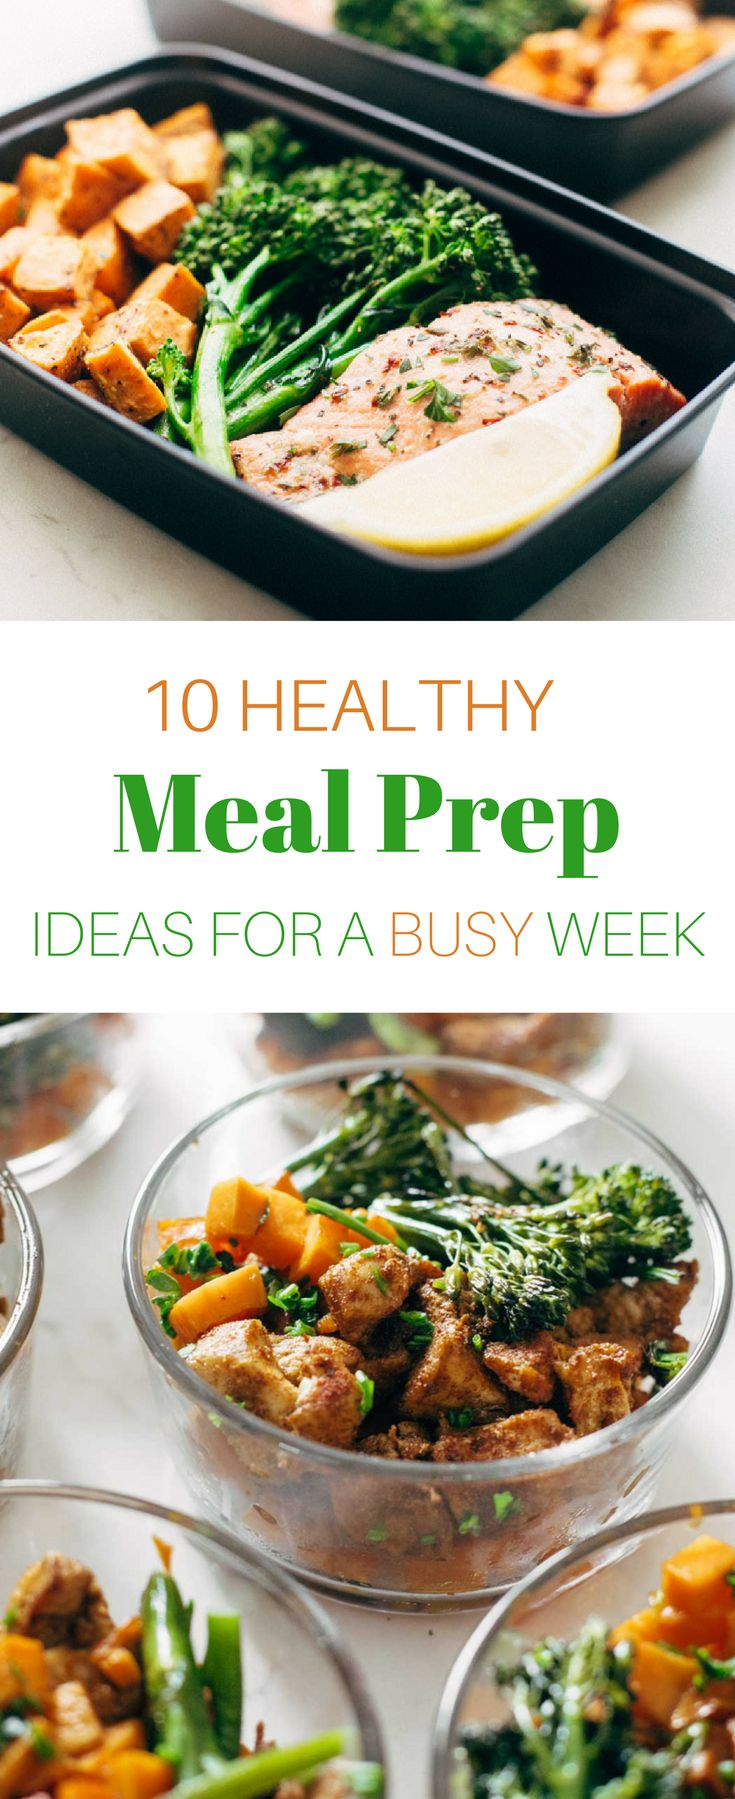 The easiest way to a healthy week? Plan ahead! These healthy meal prep ideas make weekday lunches a snap—and they're delicious, to boot. See more at spryliving.com